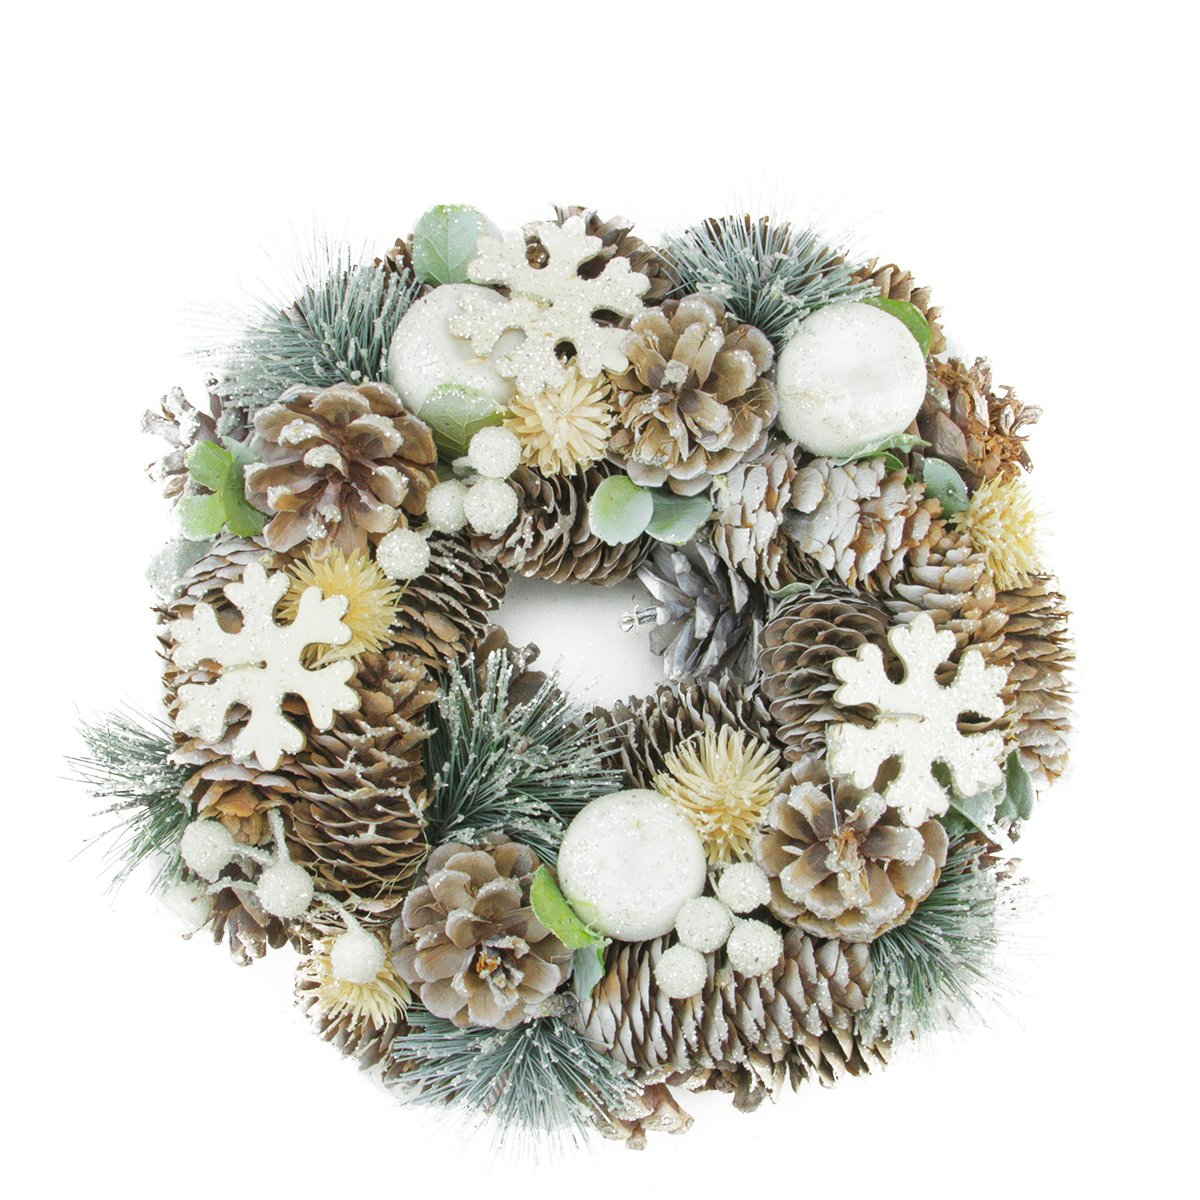 Frosted Glittery Artificial Pine Cone Snowflake Christmas Wreath